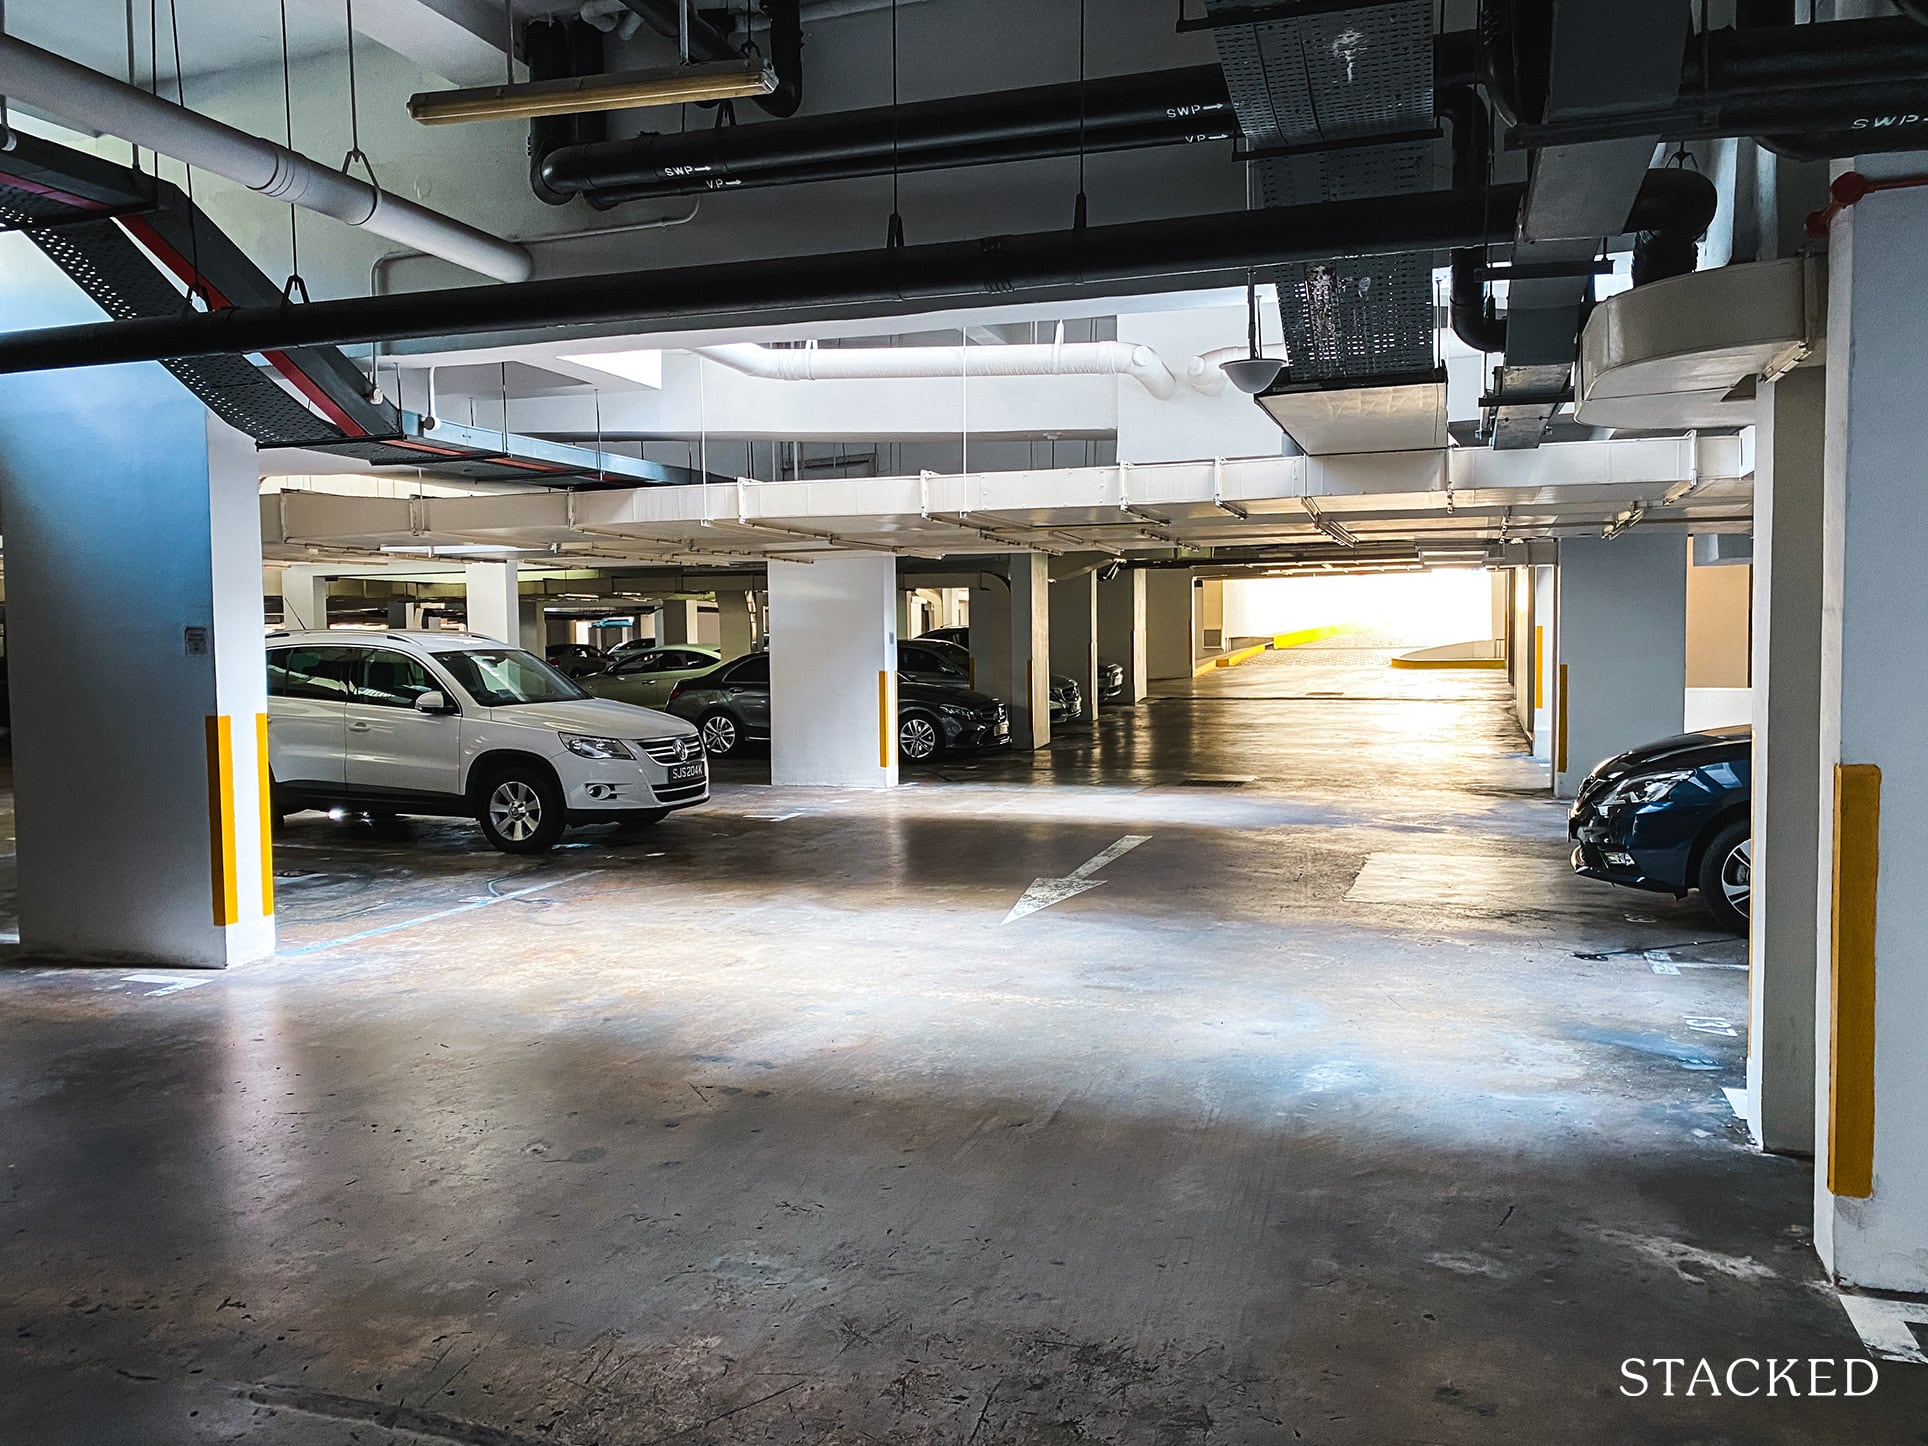 Tanglin regency basement carpark